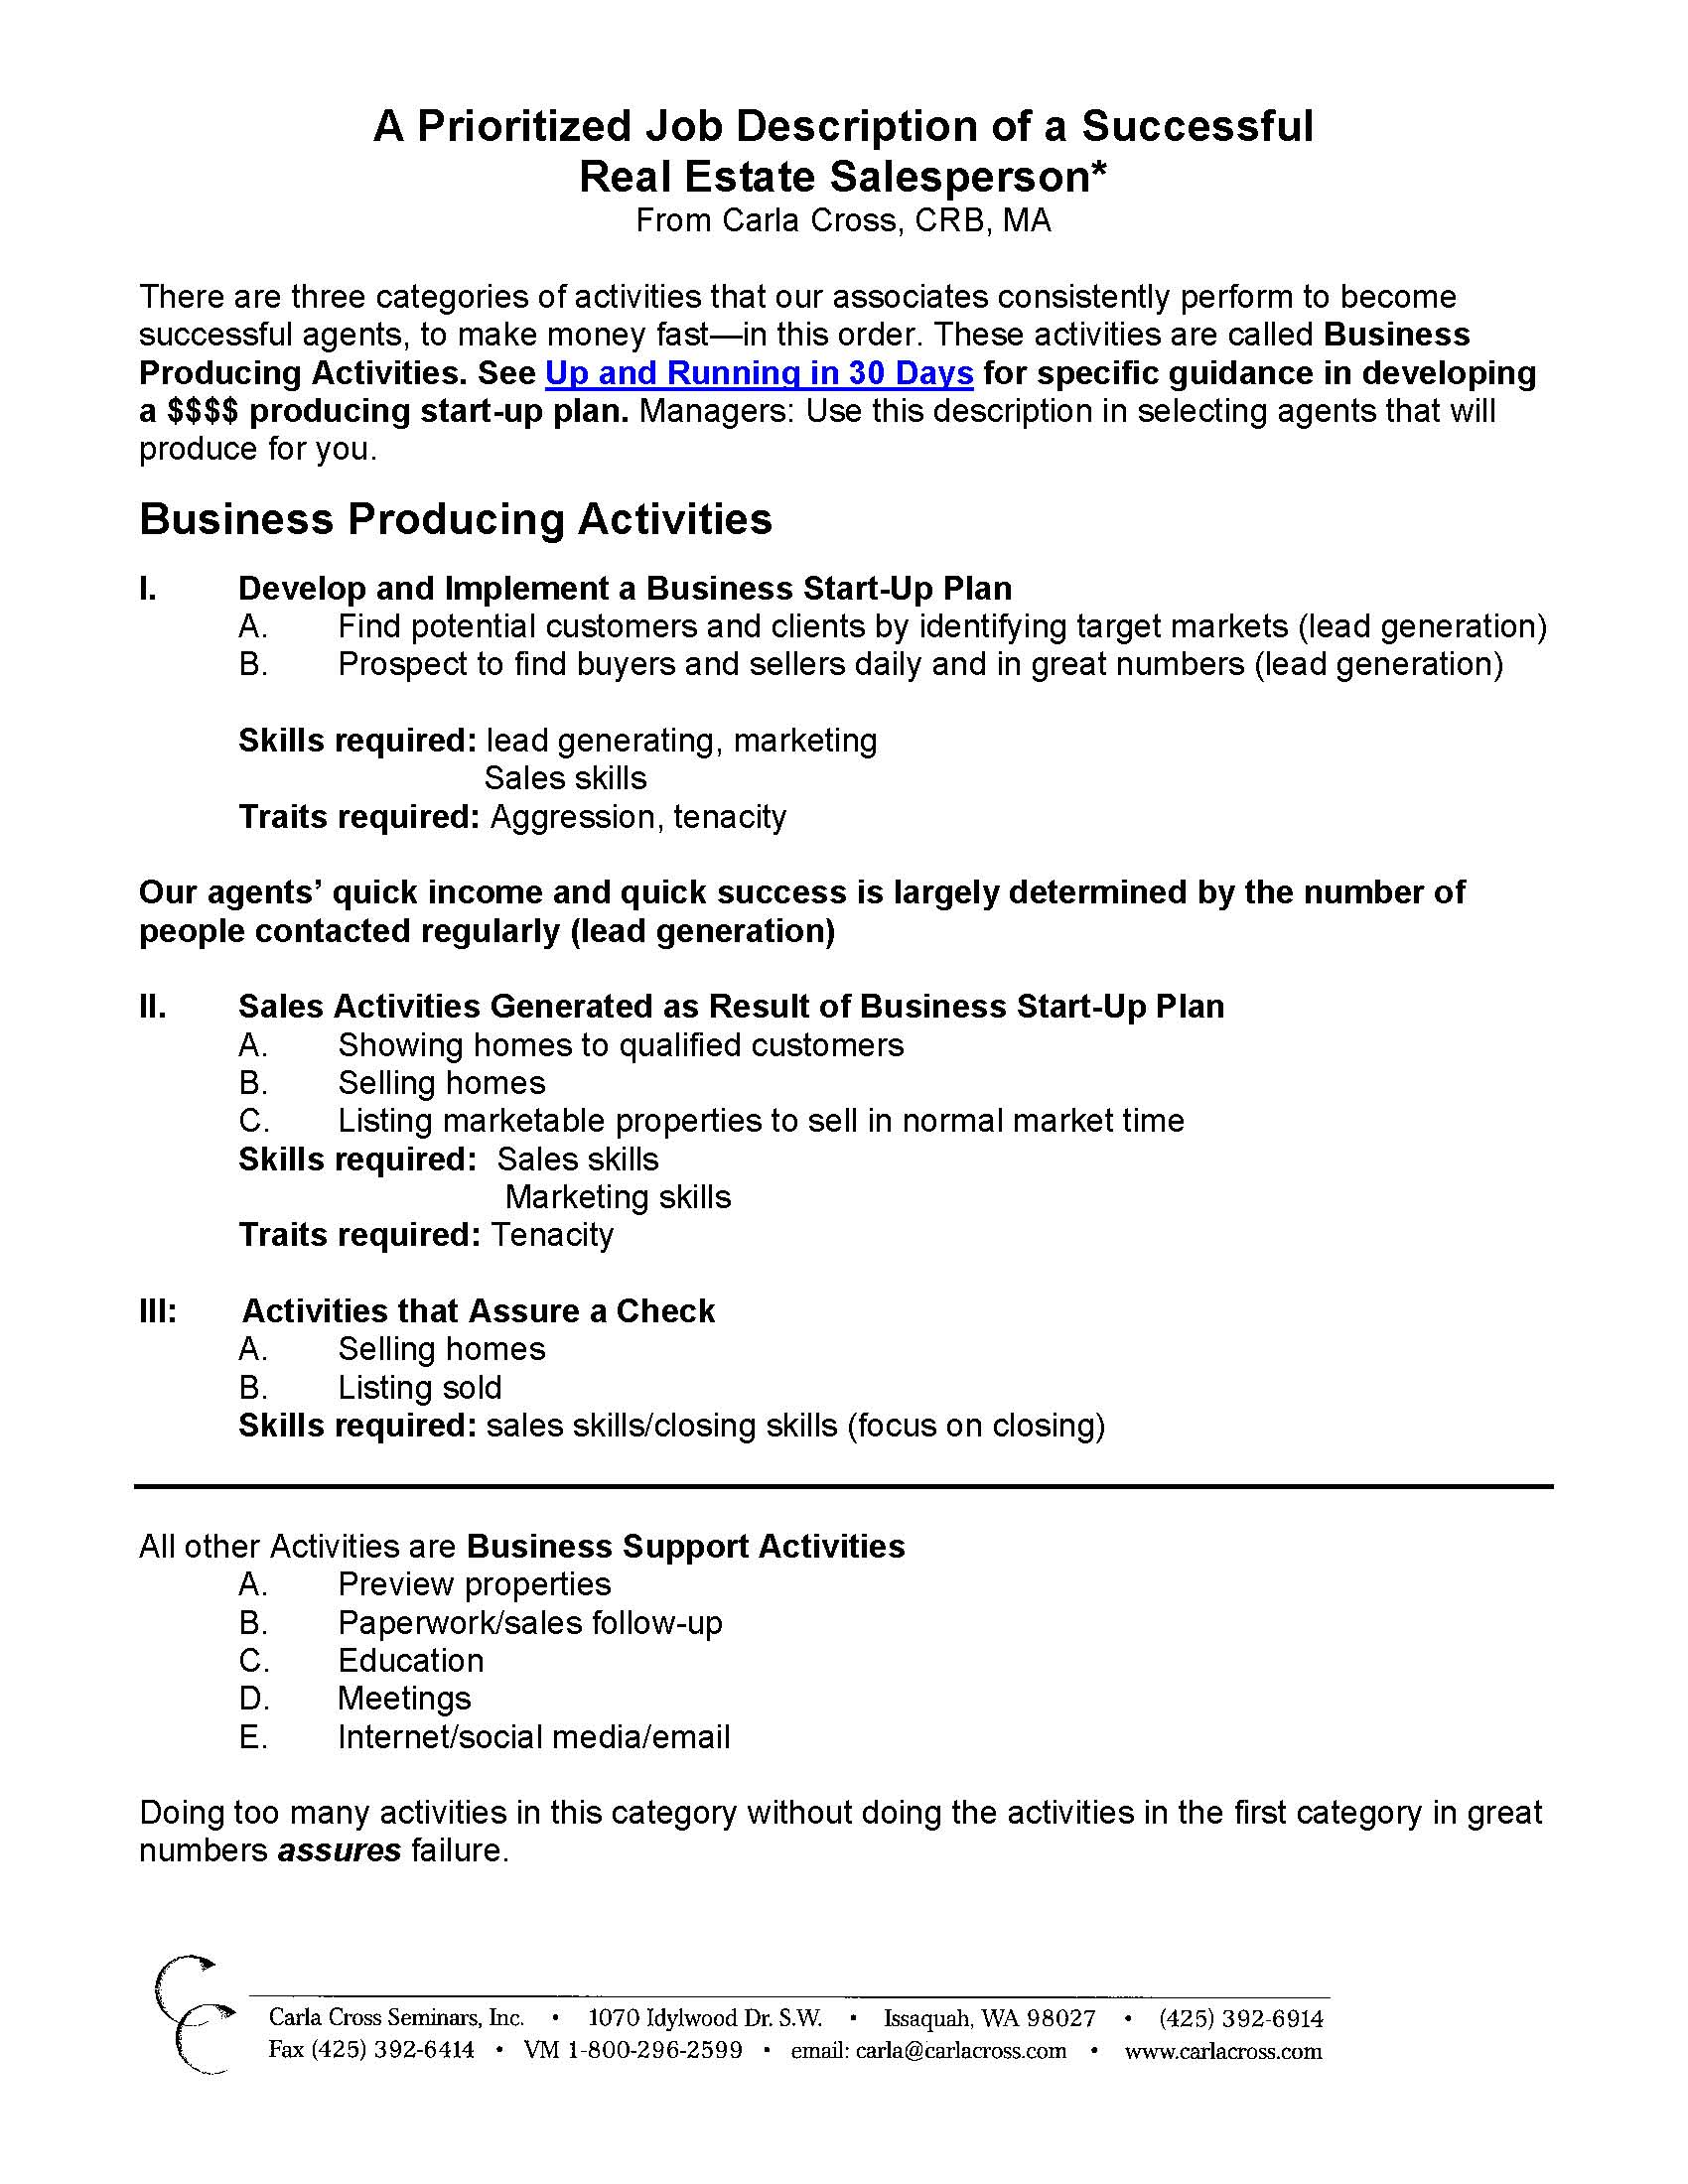 Resume Writing For Cashier Jobs  Online Writing Lab